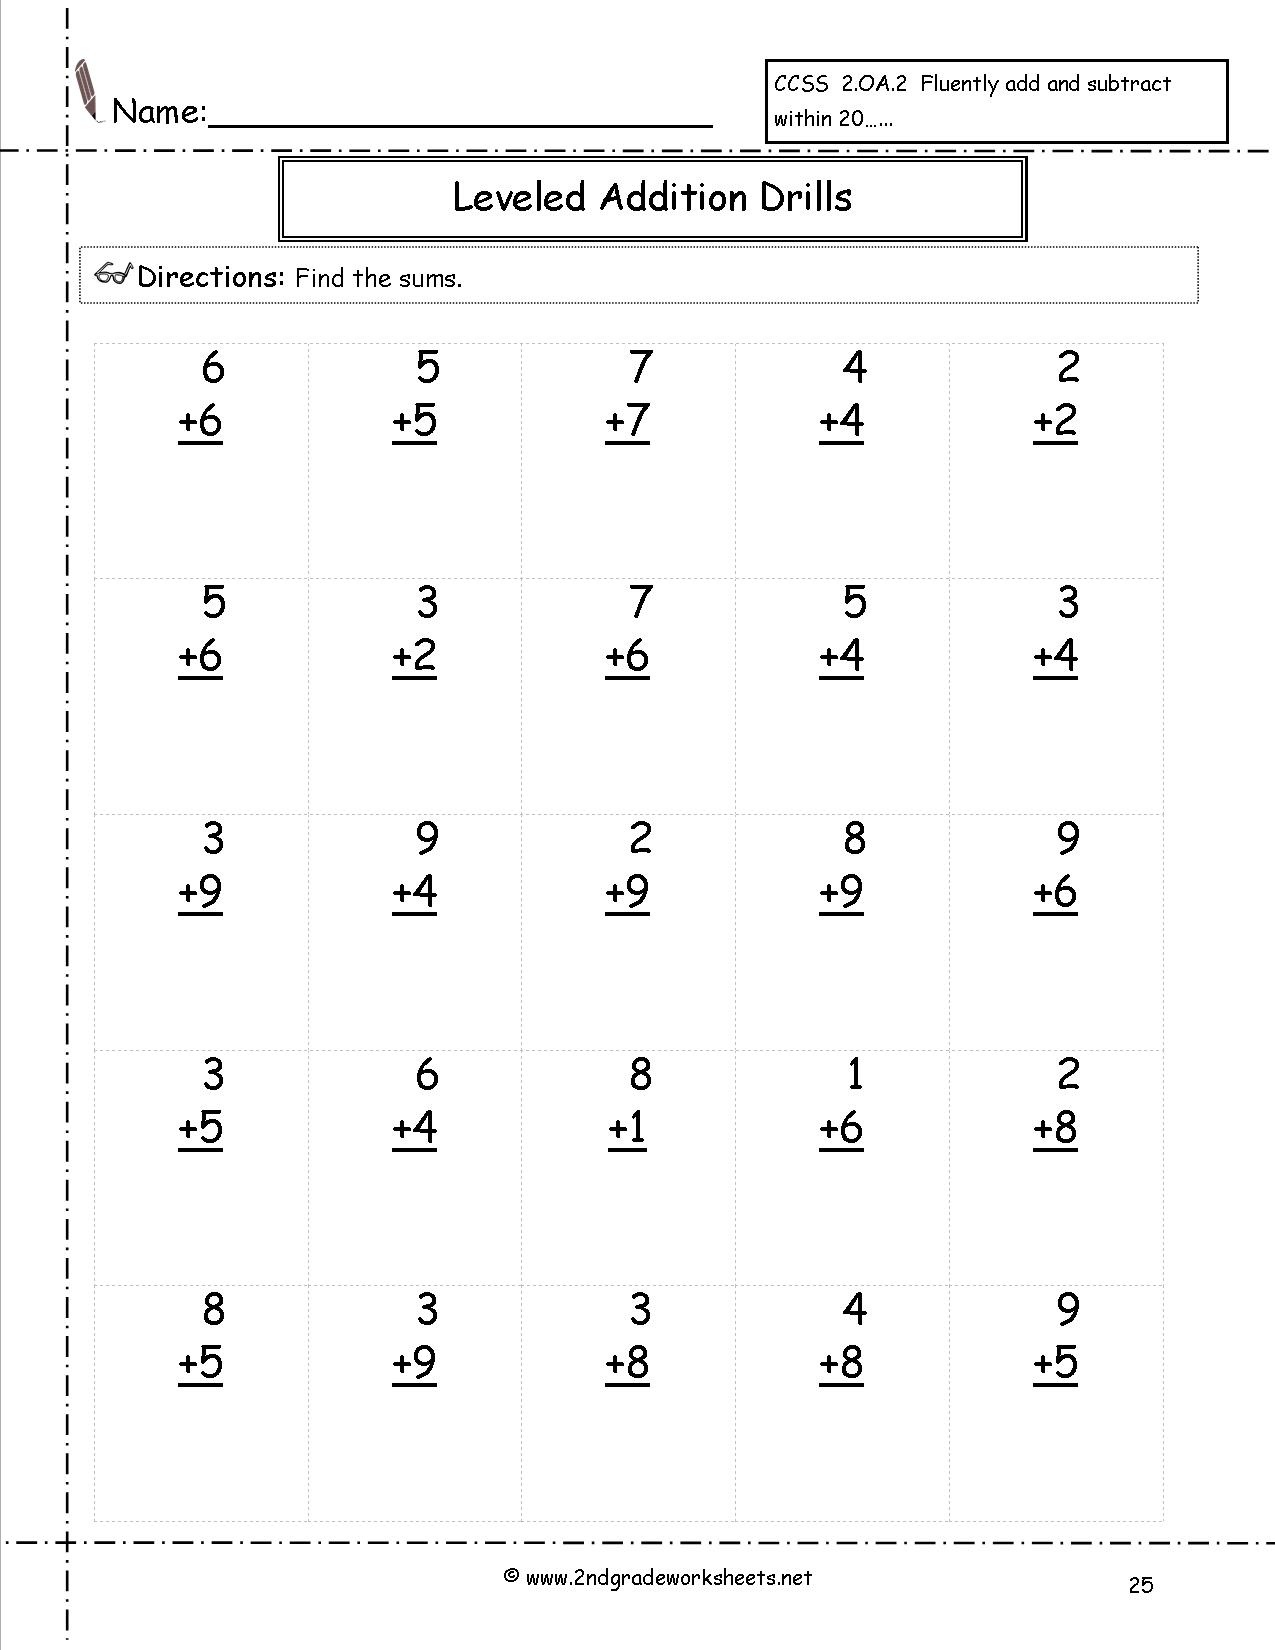 Free Math Worksheets And Printouts - Free Printable Activity Sheets For 2Nd Grade